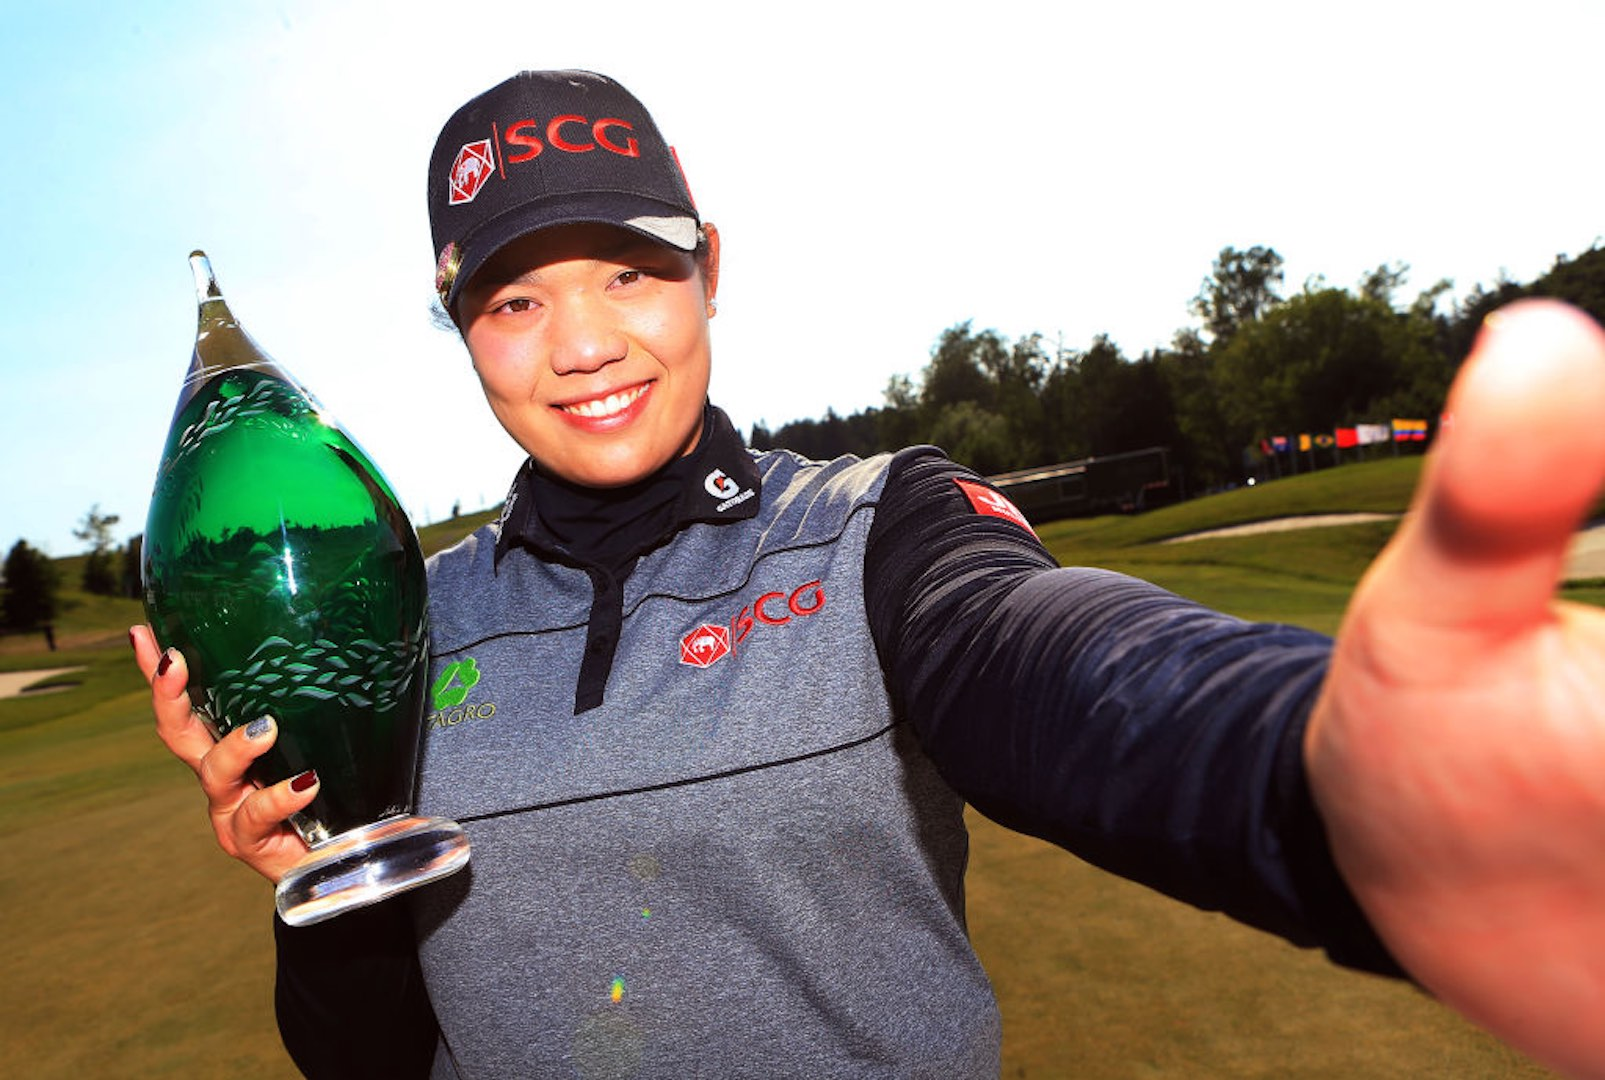 Lexi falters to play off defeat